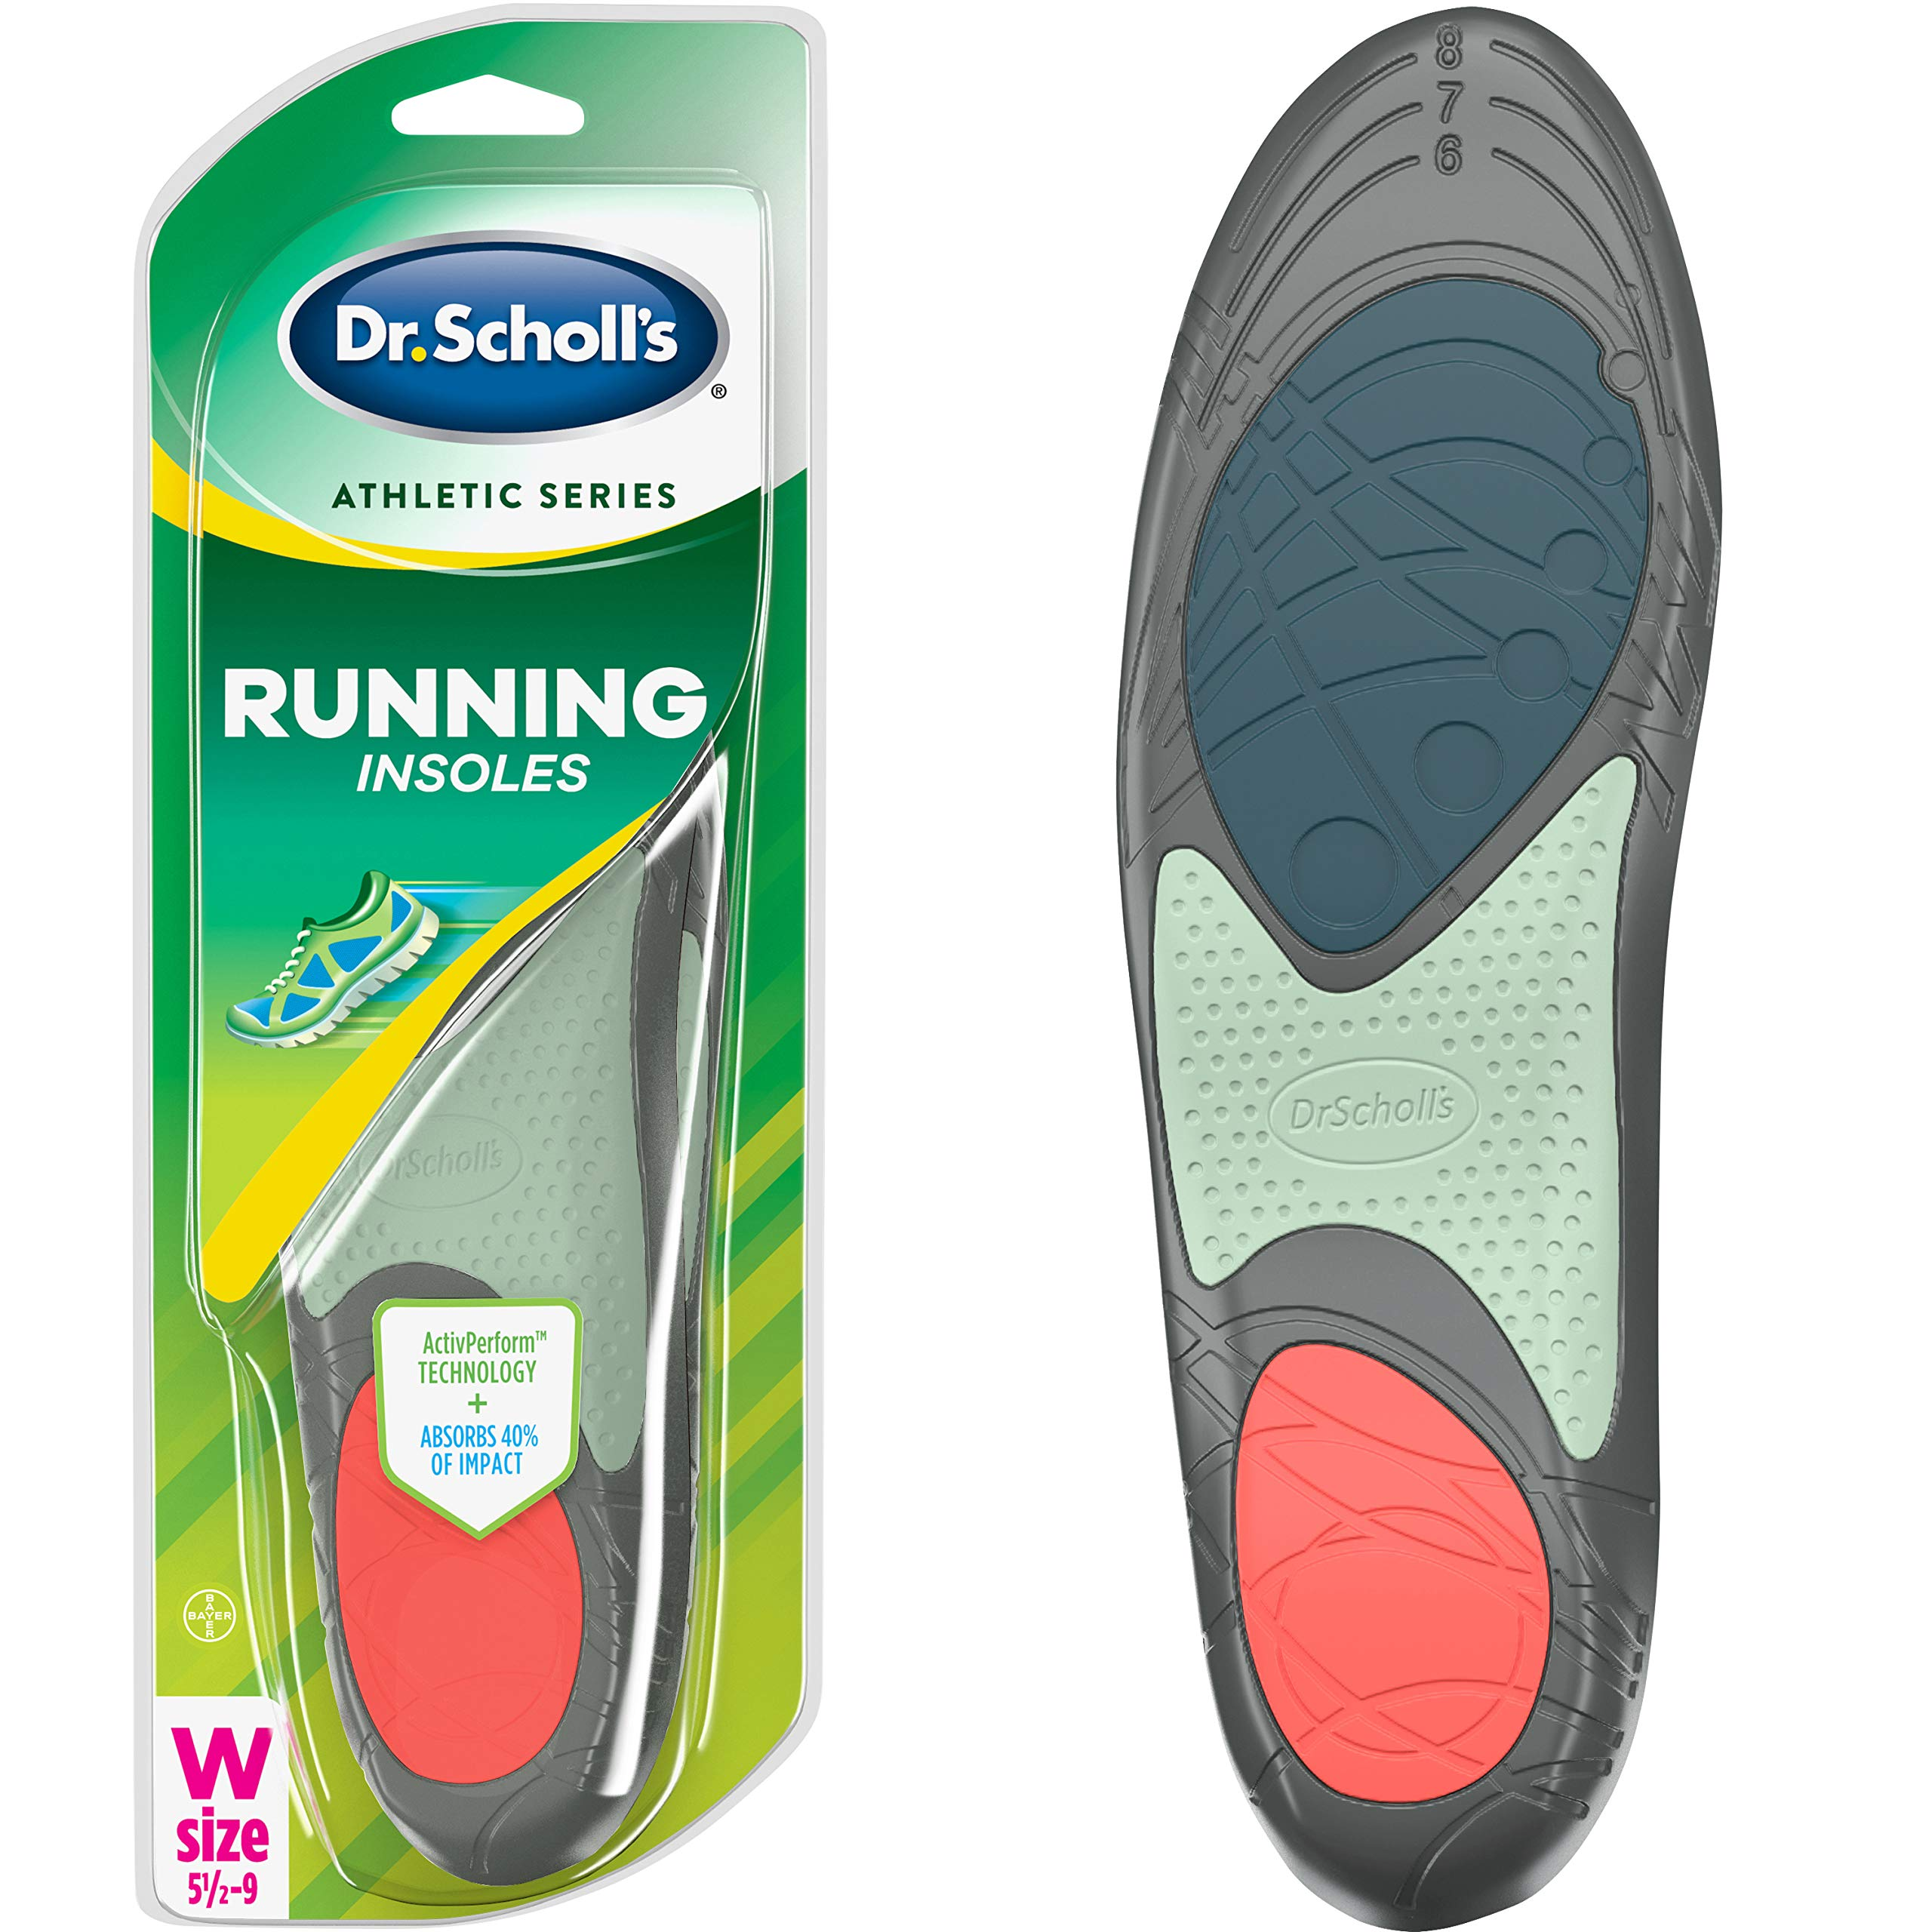 Dr. Scholl's RUNNING Insoles // Reduce Shock and Prevent Common Running Injuries: Runner's Knee, Plantar Fasciitis and Shin Splints (for Women's 5.5-9, also available for Men's 7.5-10 & Men's 10.5-14) by Dr. Scholl's